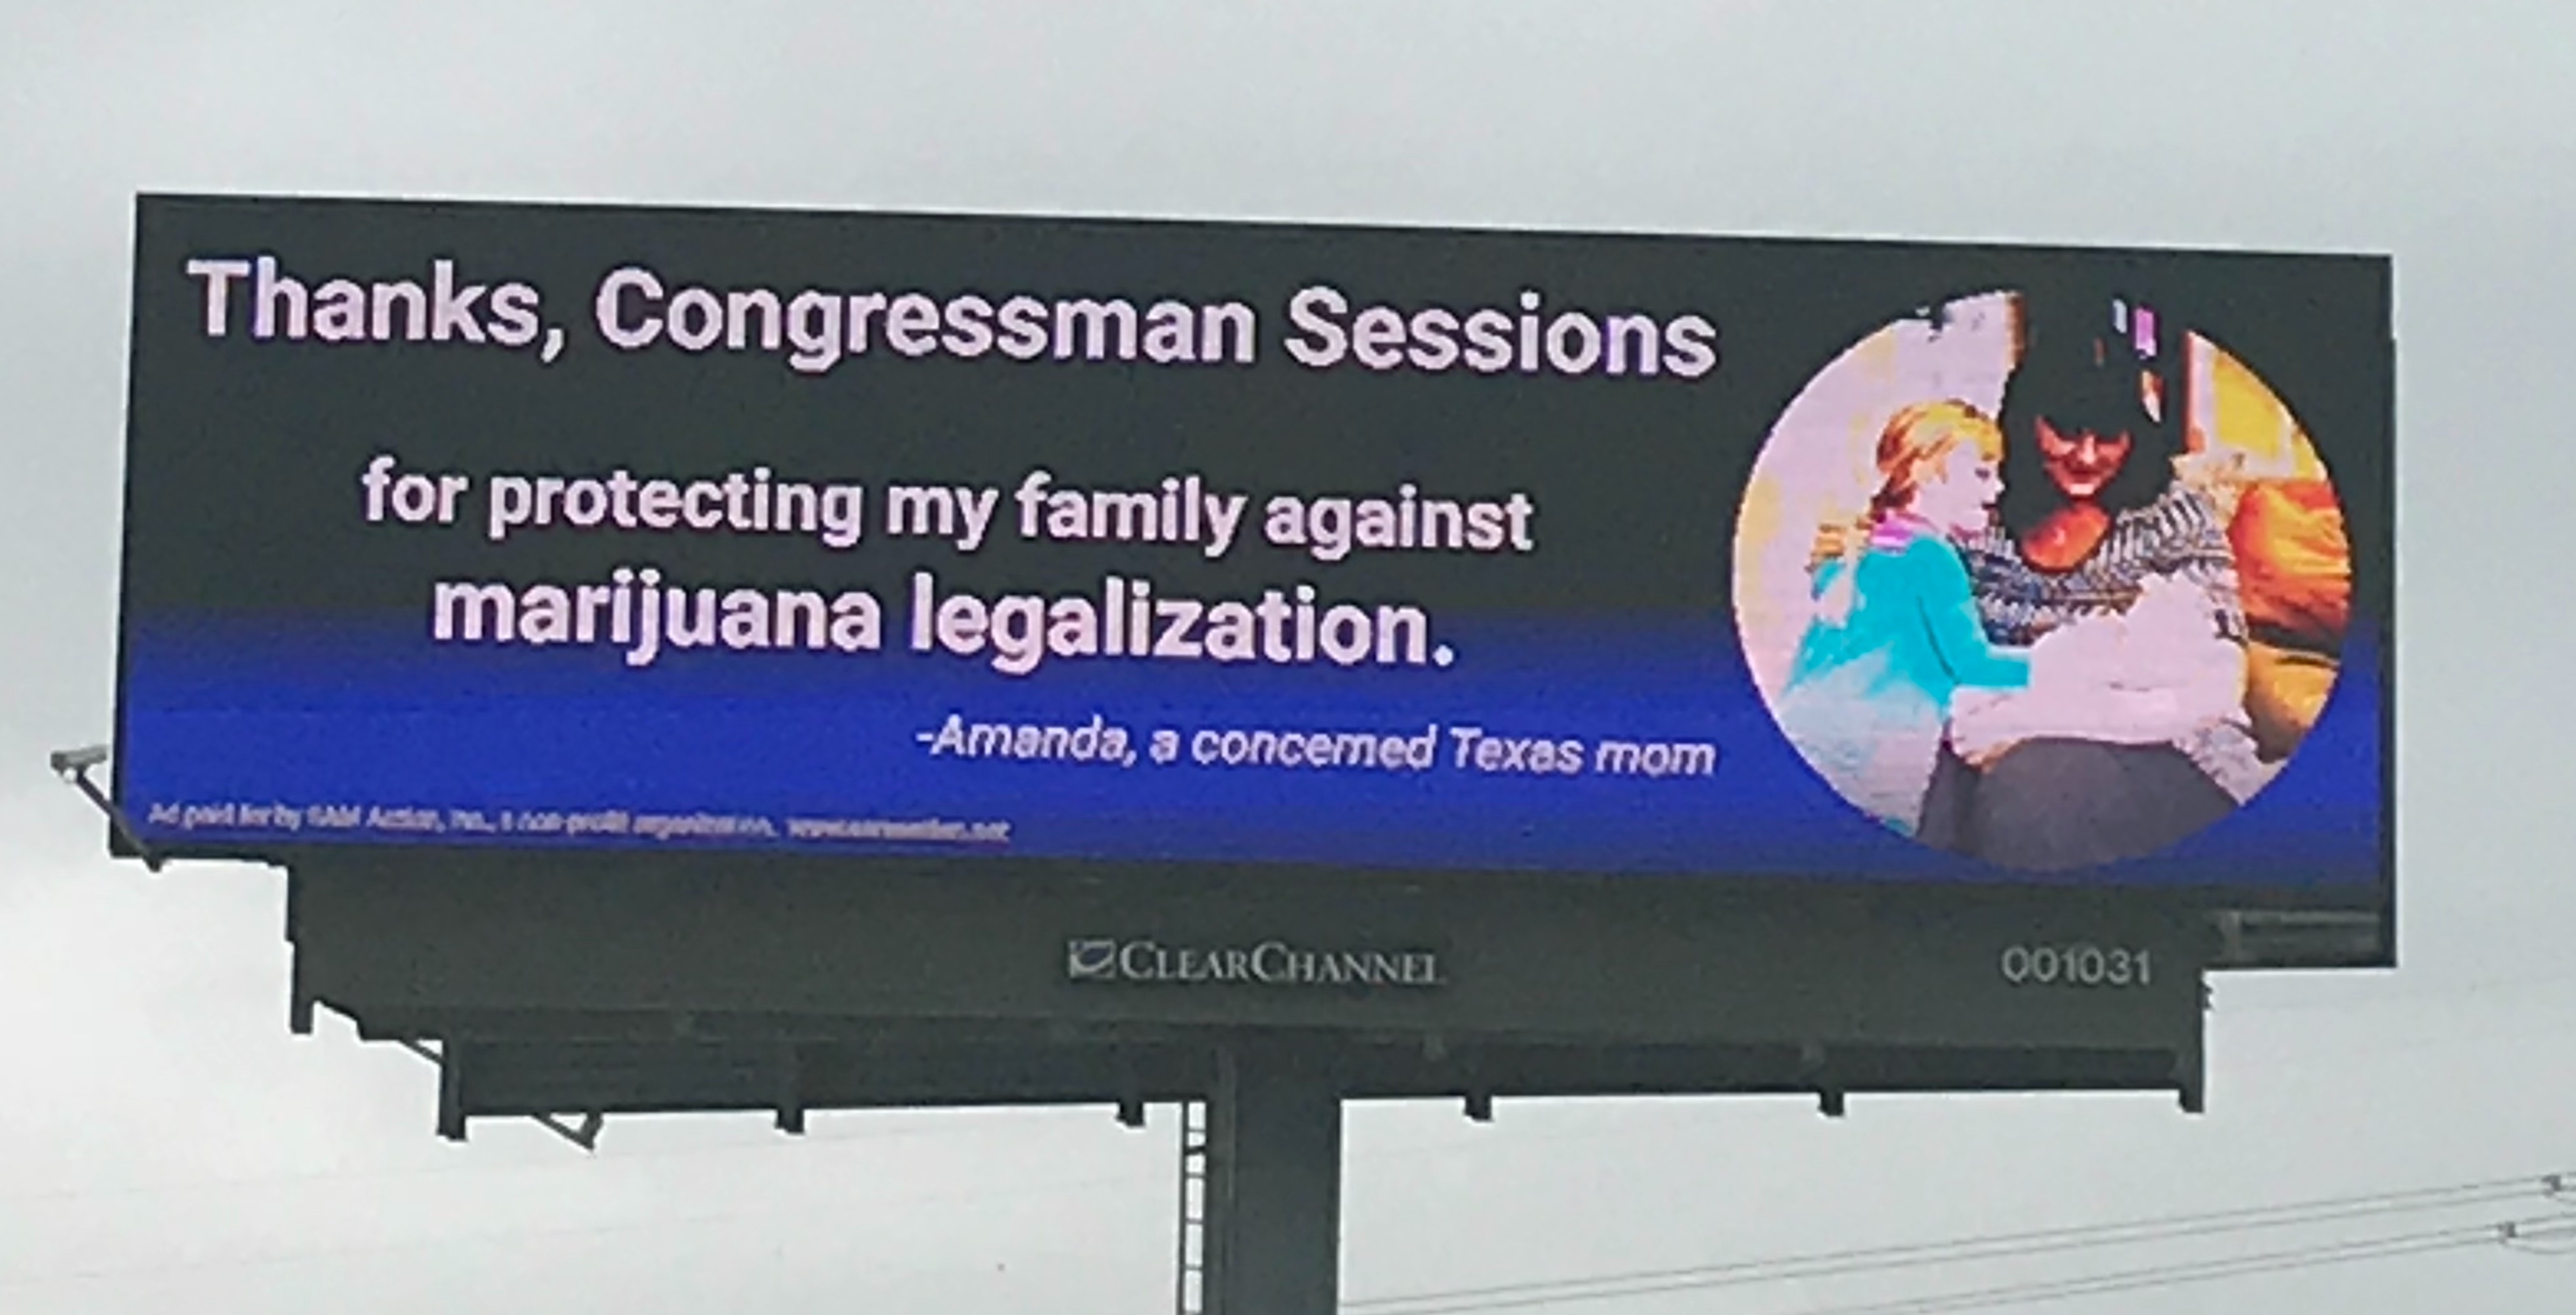 Thank You, Congressman Sessions!